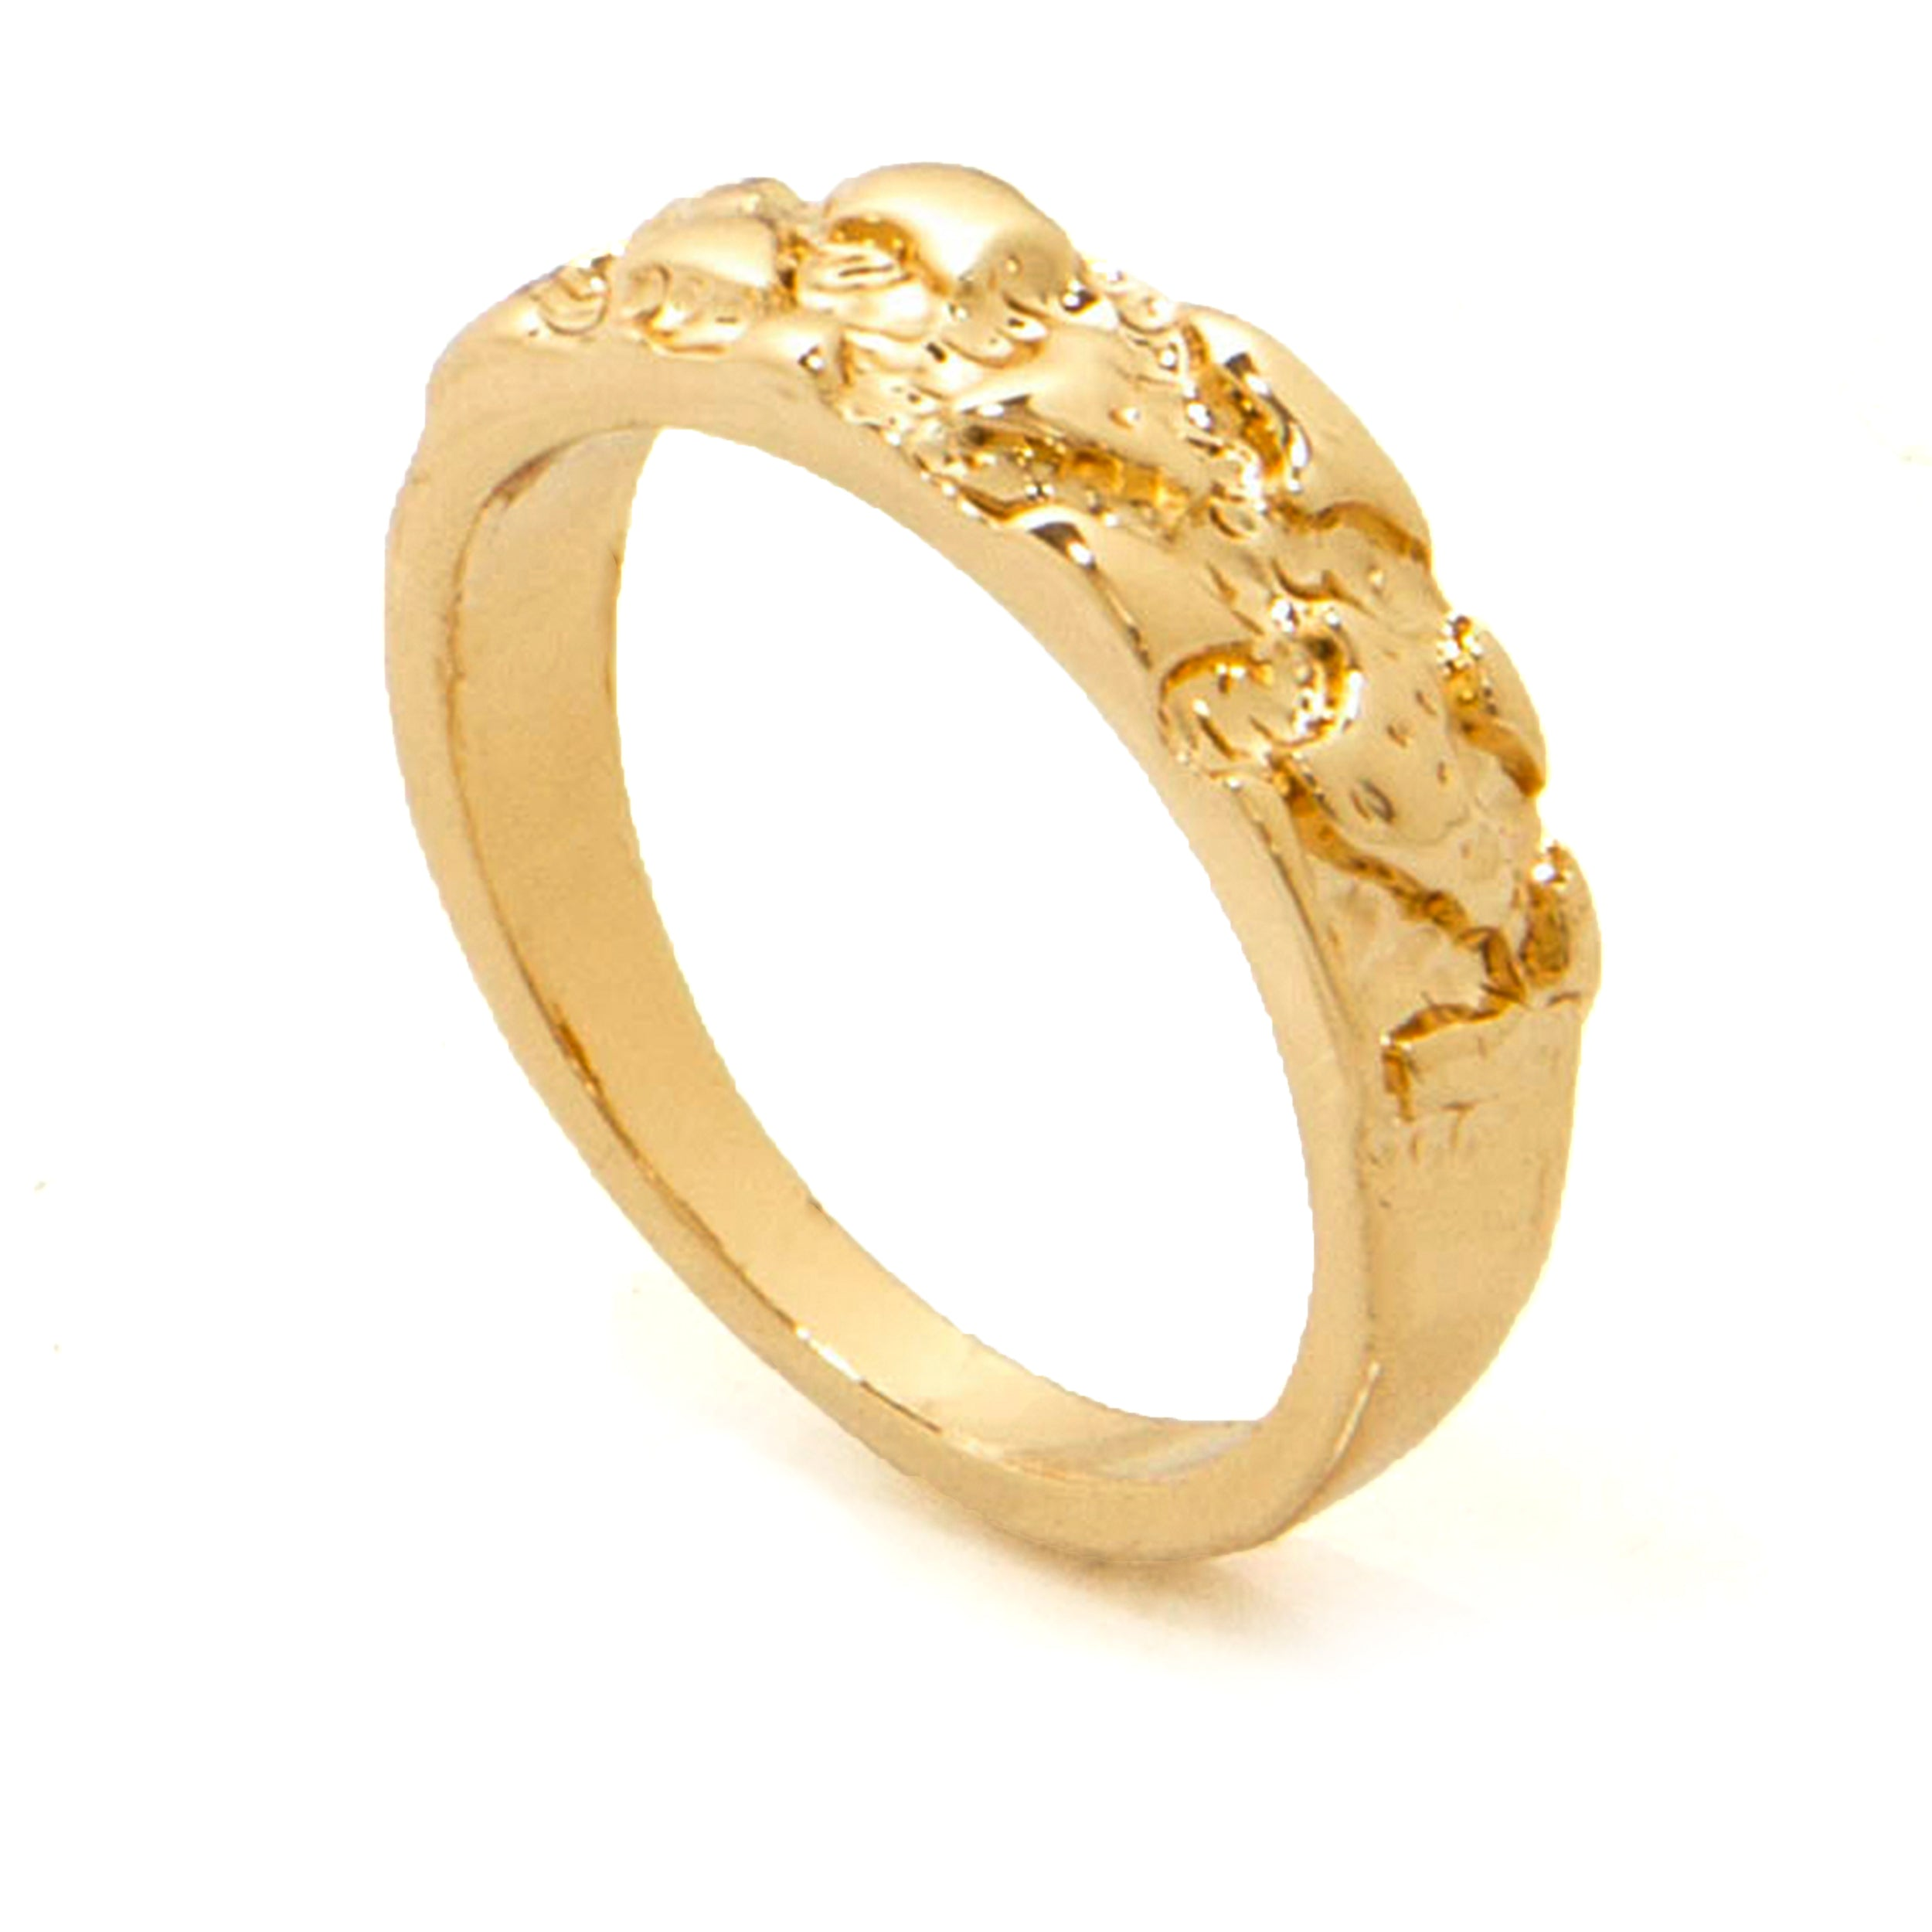 frivole cleef model view flora gold rings en small us ring arpels jewelry collections van flower